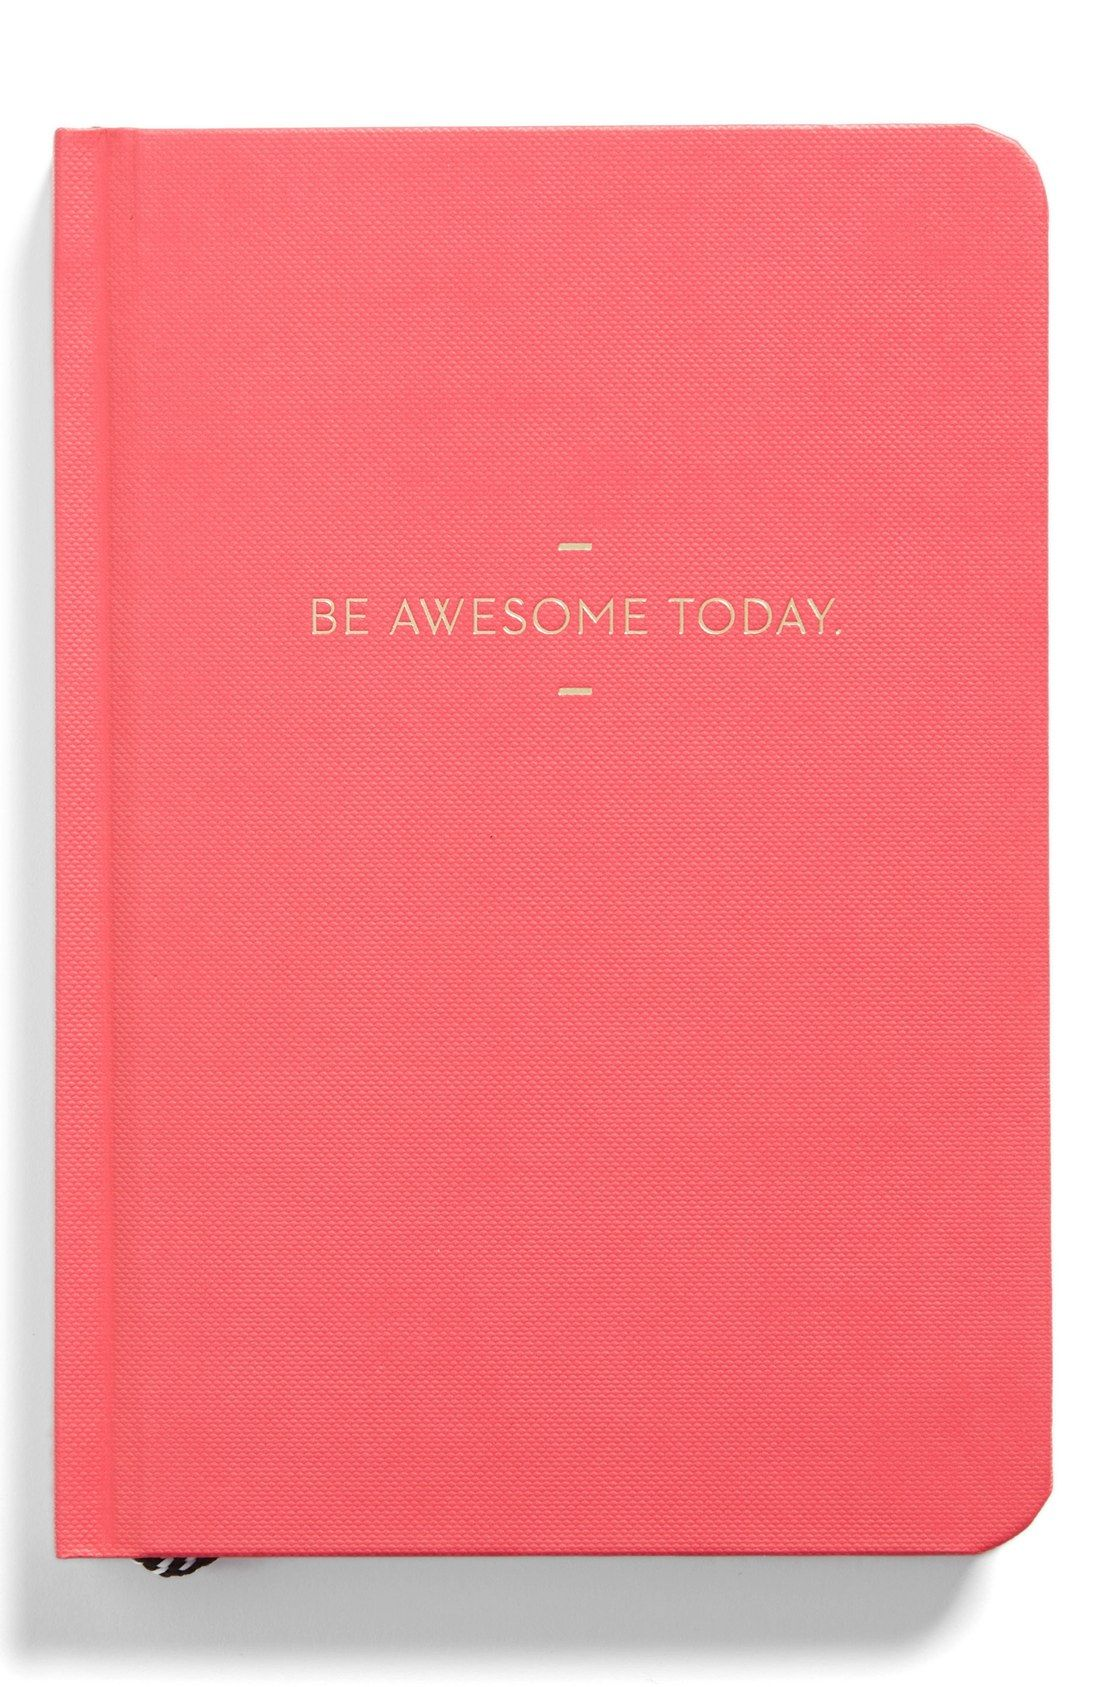 This adorable and sleek pinkjournal isstamped with the foiled motto 'Be Awesome Today'.